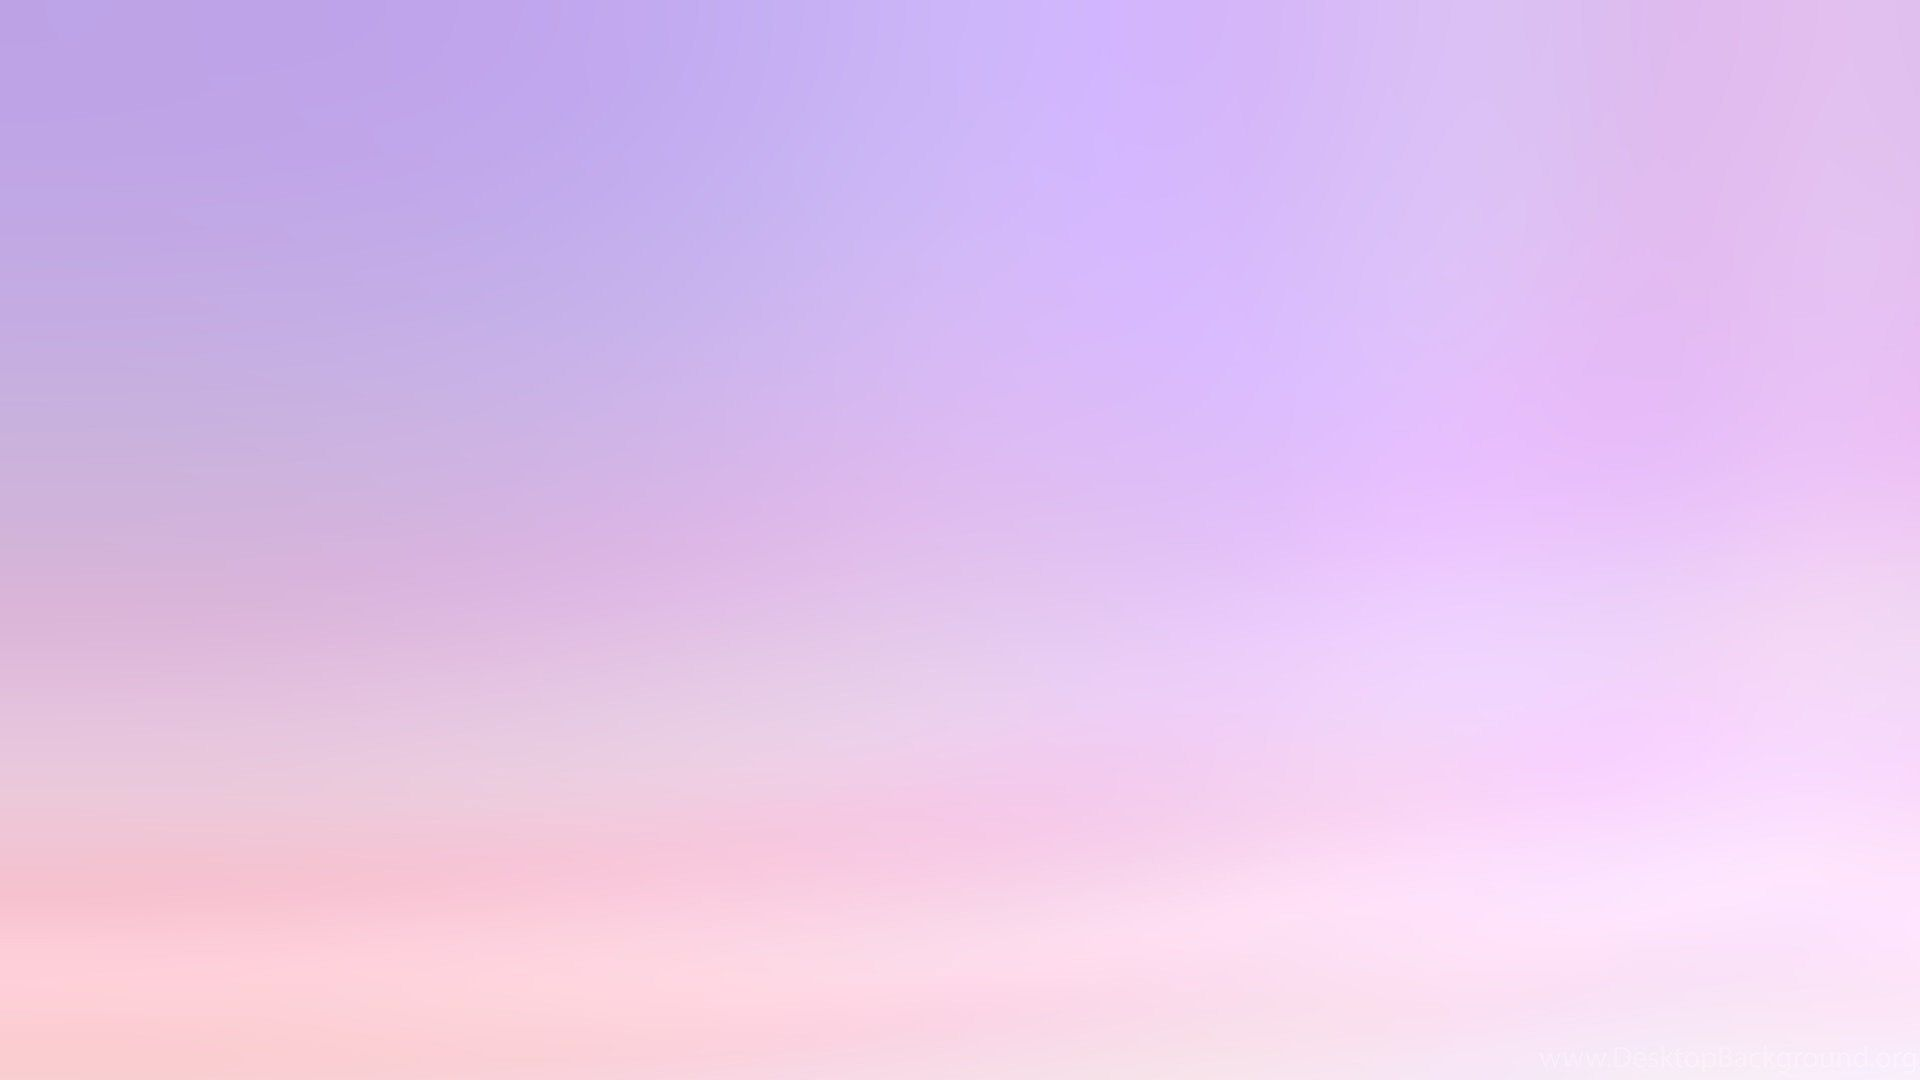 Pastel Gradient Wallpapers Top Free Pastel Gradient Backgrounds